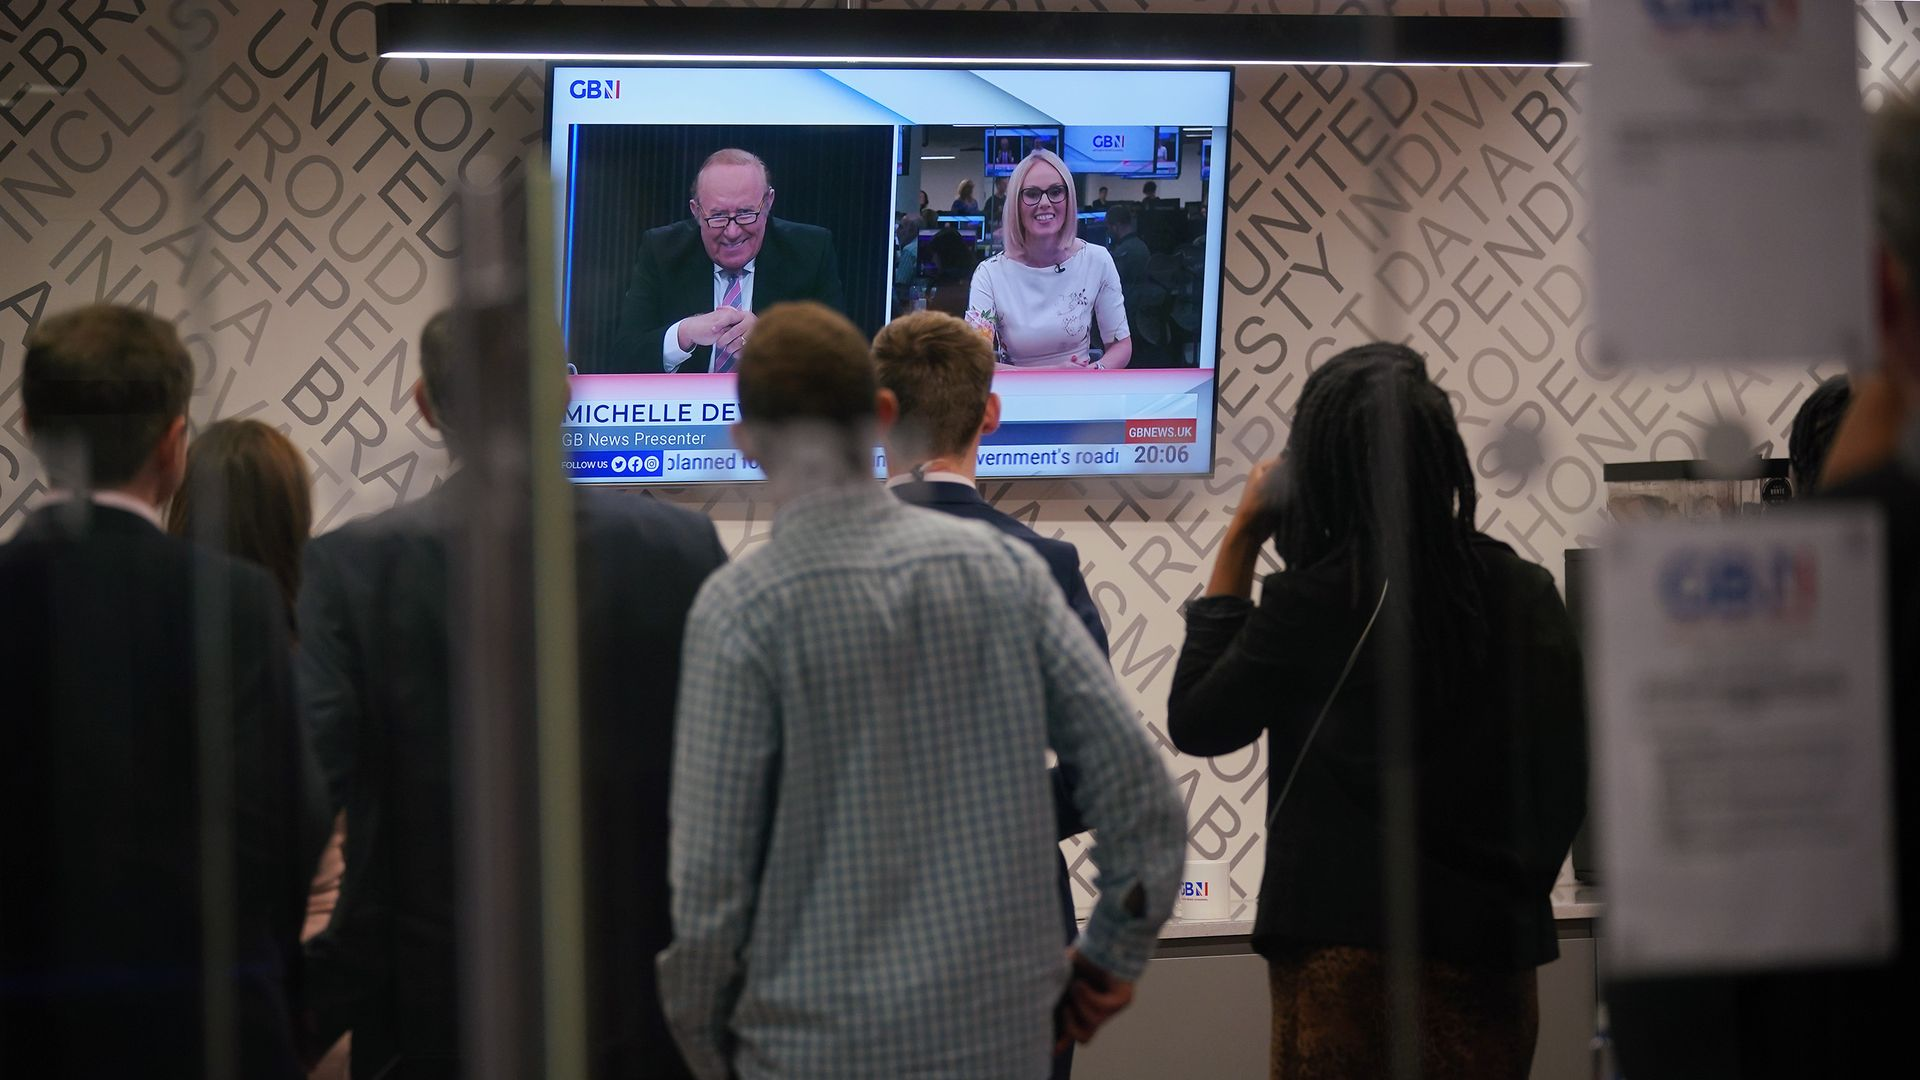 GB News staff watch Andrew Neil and Michelle Dewberry broadcast during the launch of TV channel GB News, Sunday June 13, 2021 - Credit: PA Wire/PA Images